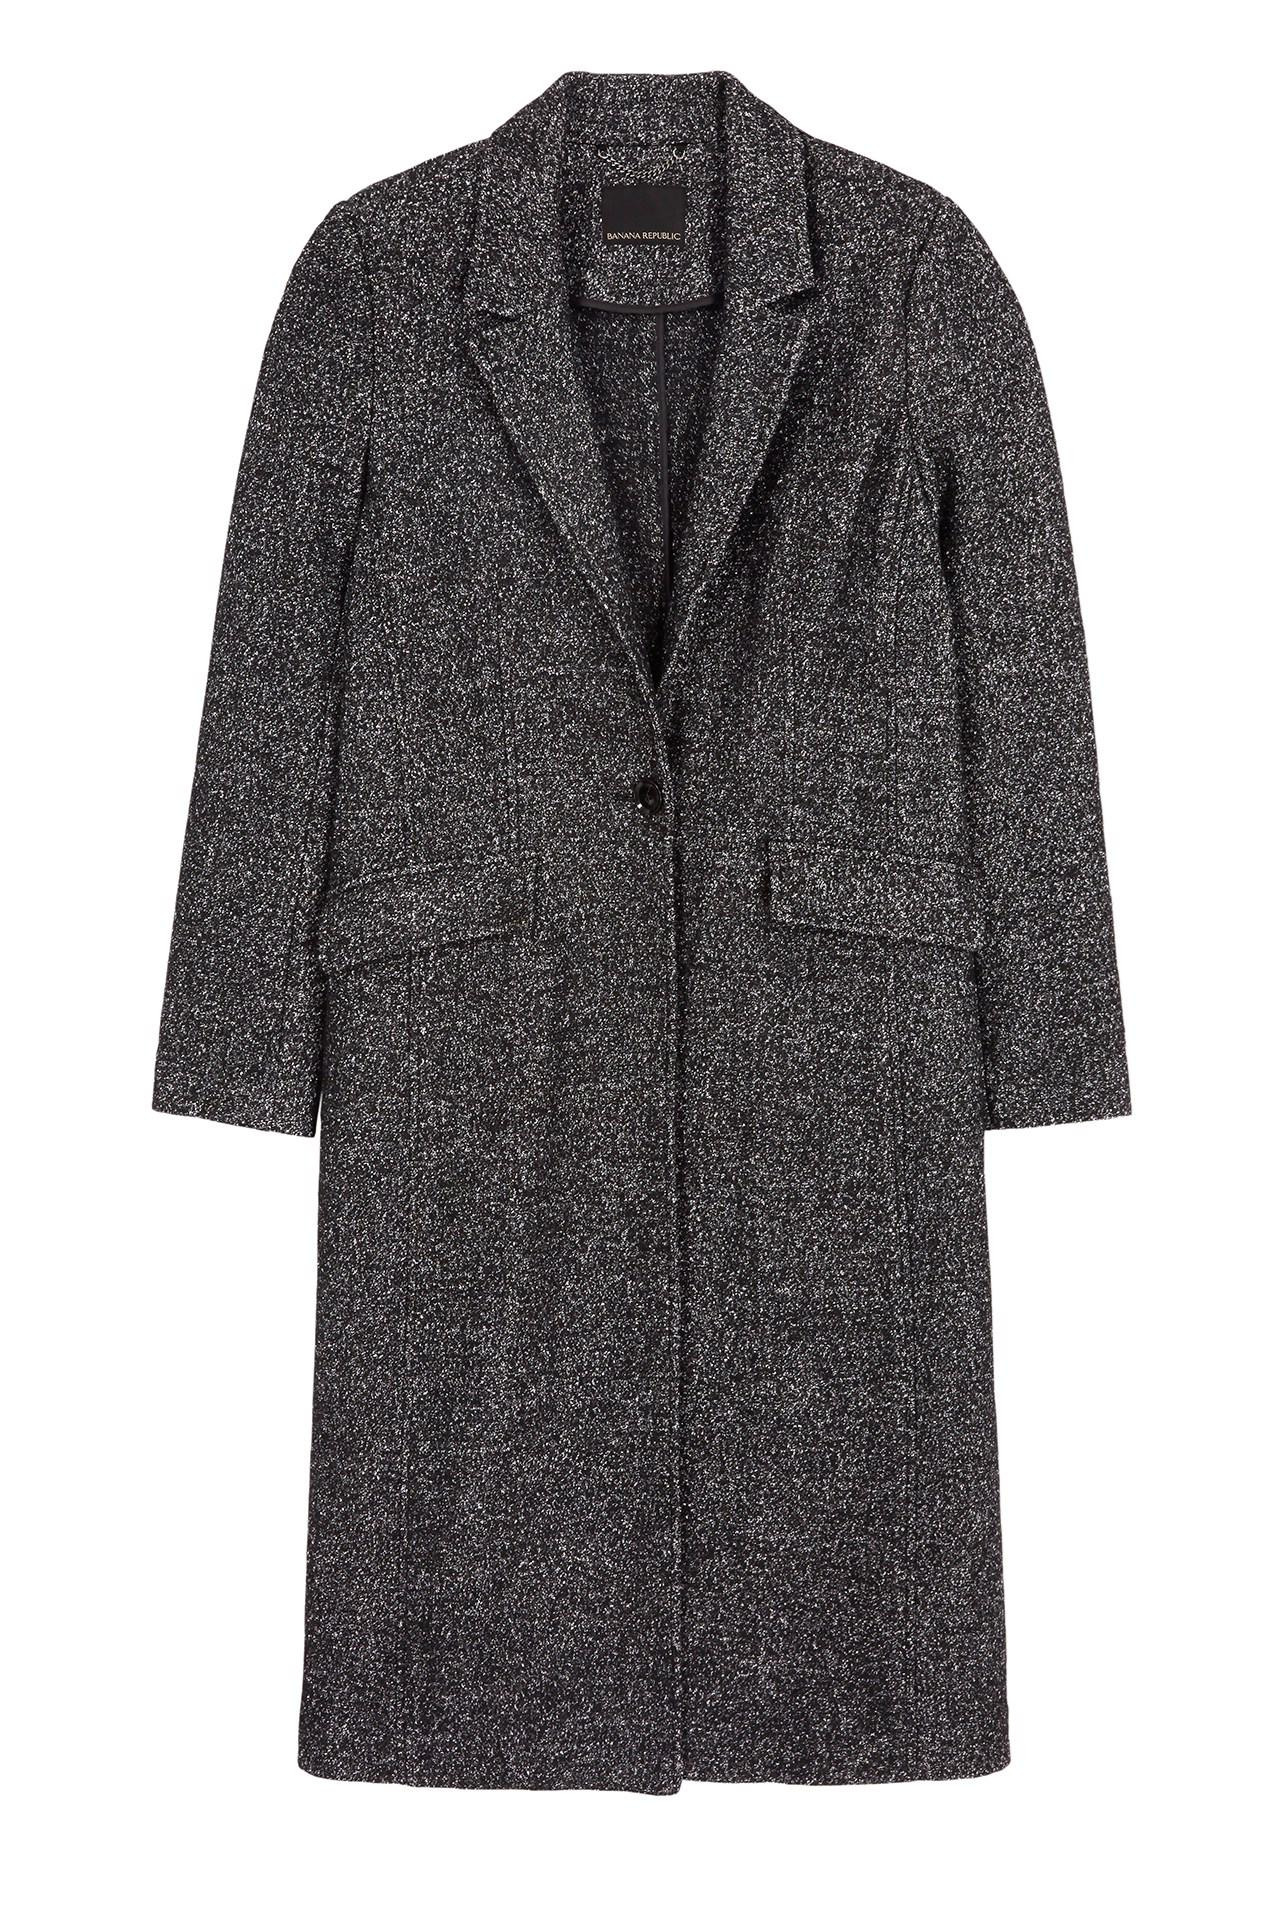 Have you bought your autumn coat yet? 25 reasons to buy it now: http://t.co/Q6ZoROeC1f http://t.co/uGp3gd2Gmy